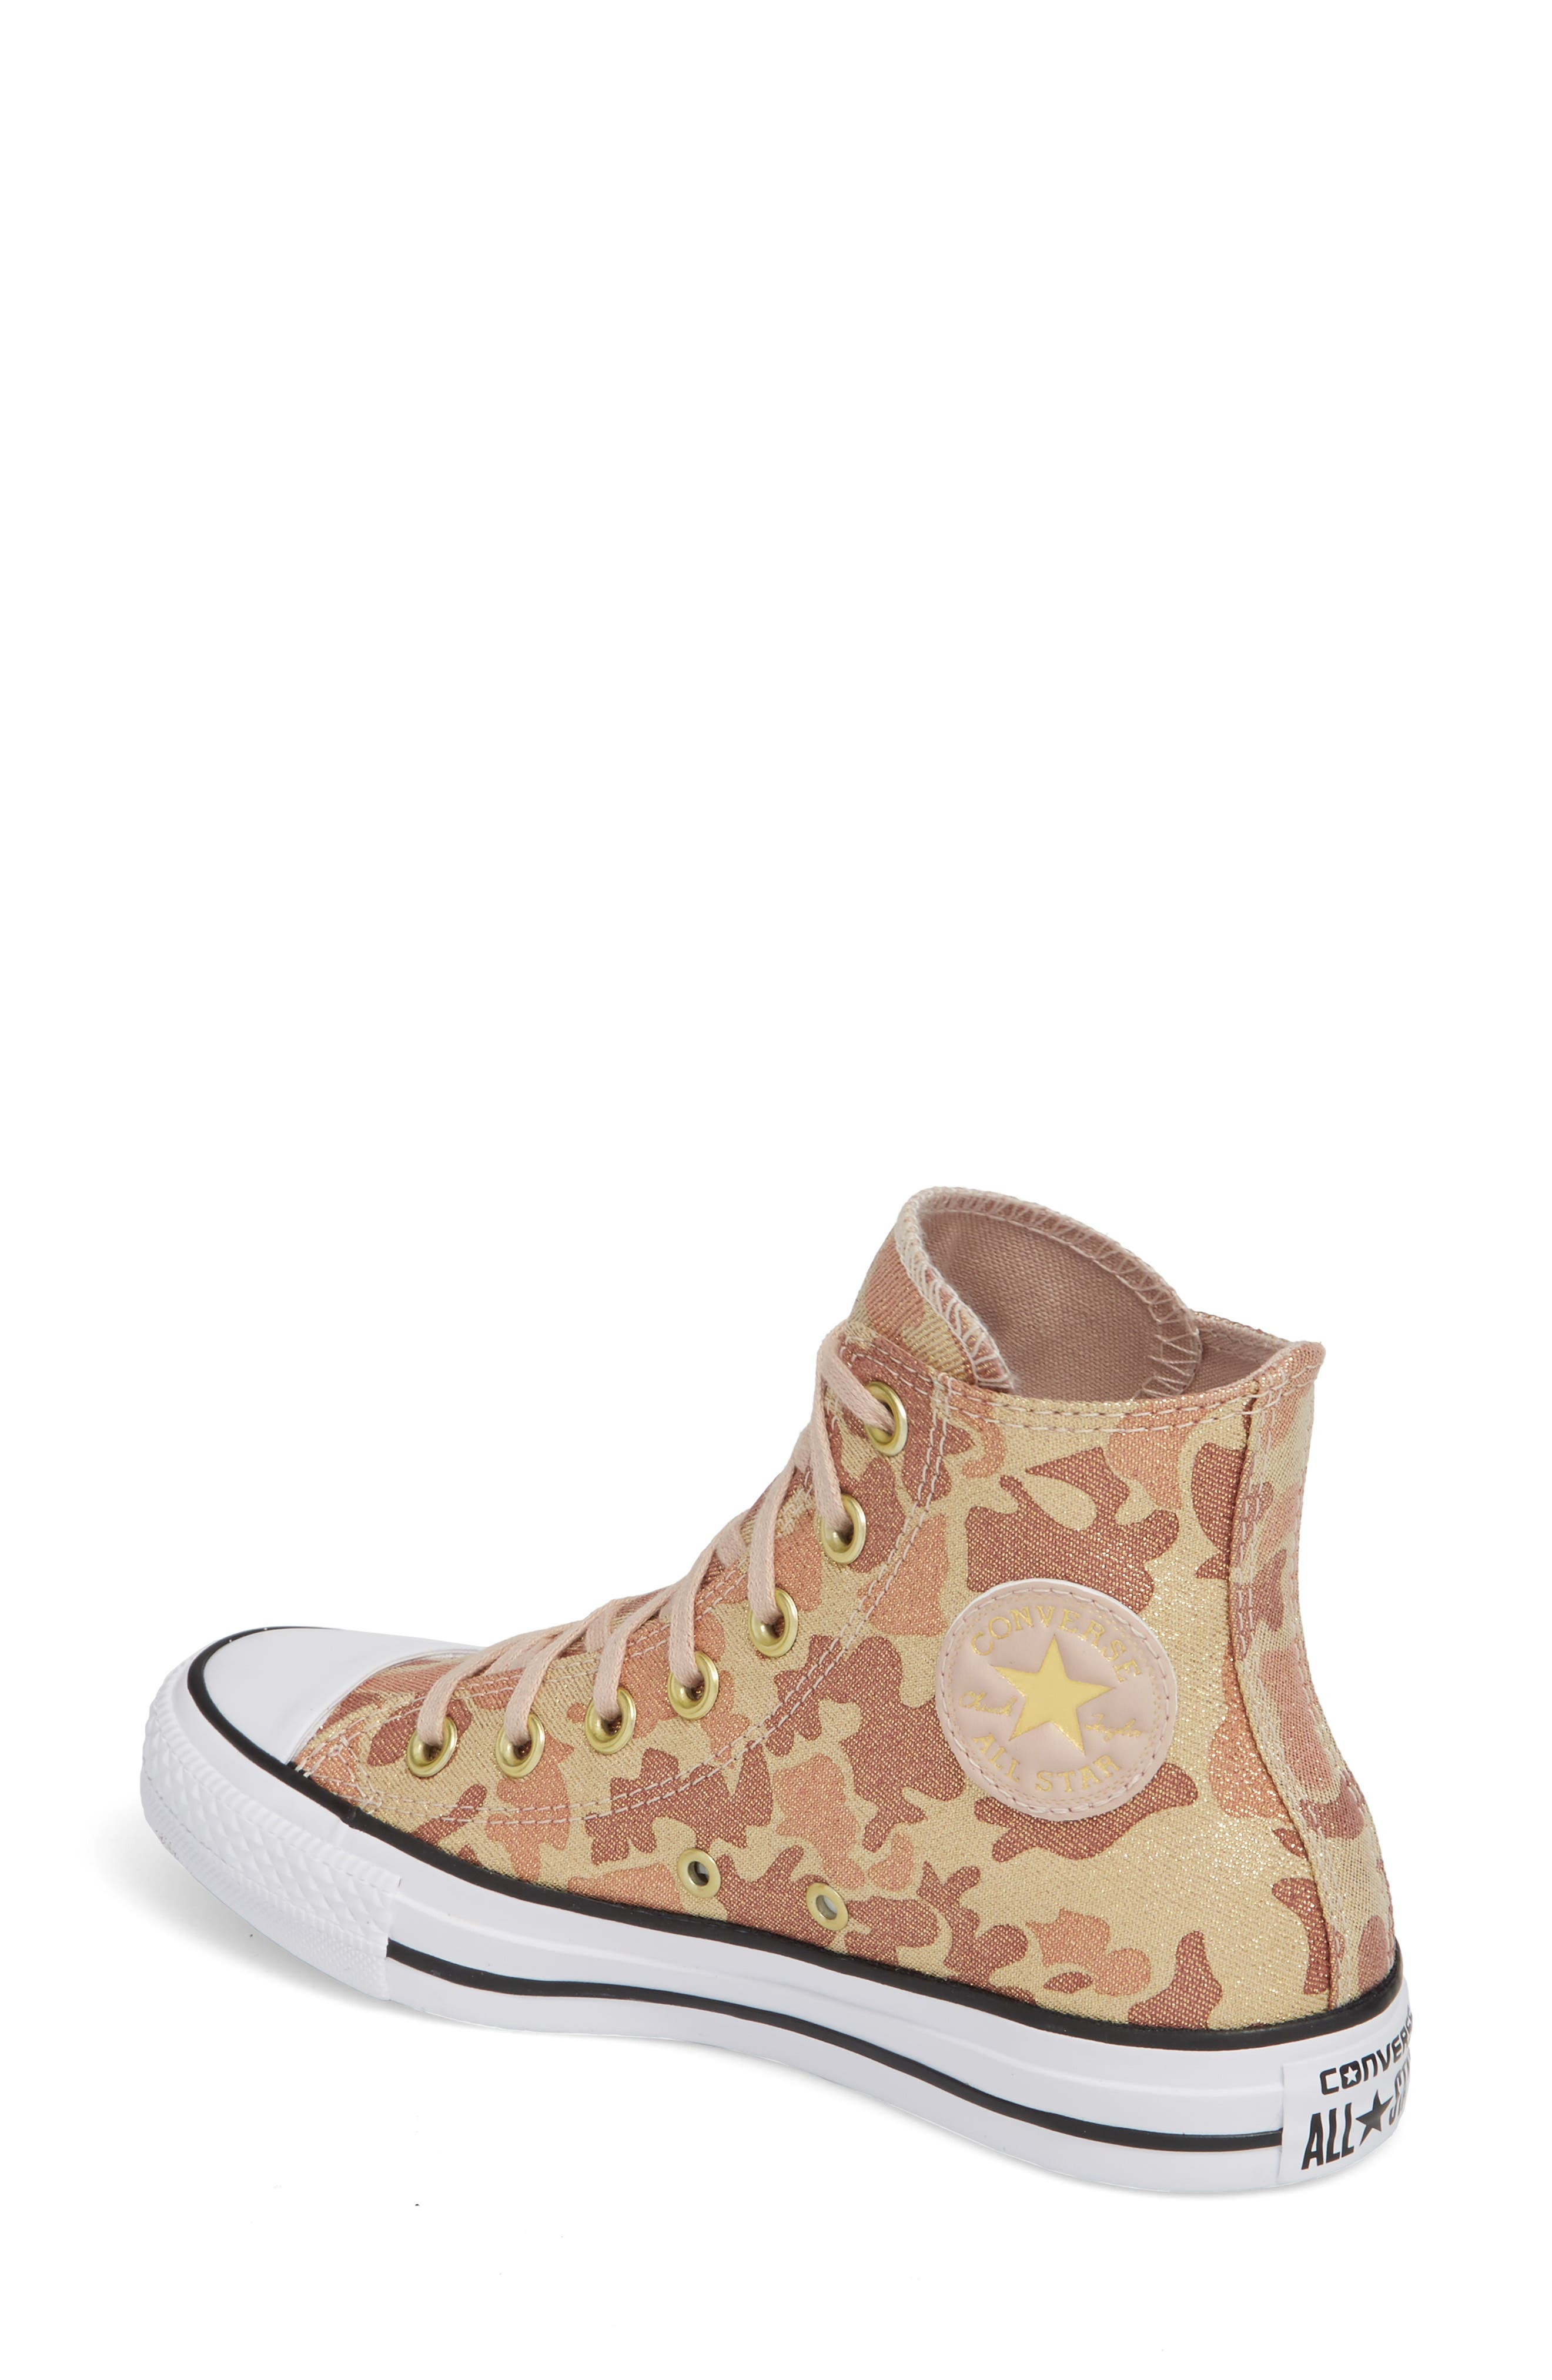 Chuck Taylor<sup>®</sup> All Star<sup>®</sup> High Top Sneaker,                             Alternate thumbnail 2, color,                             264